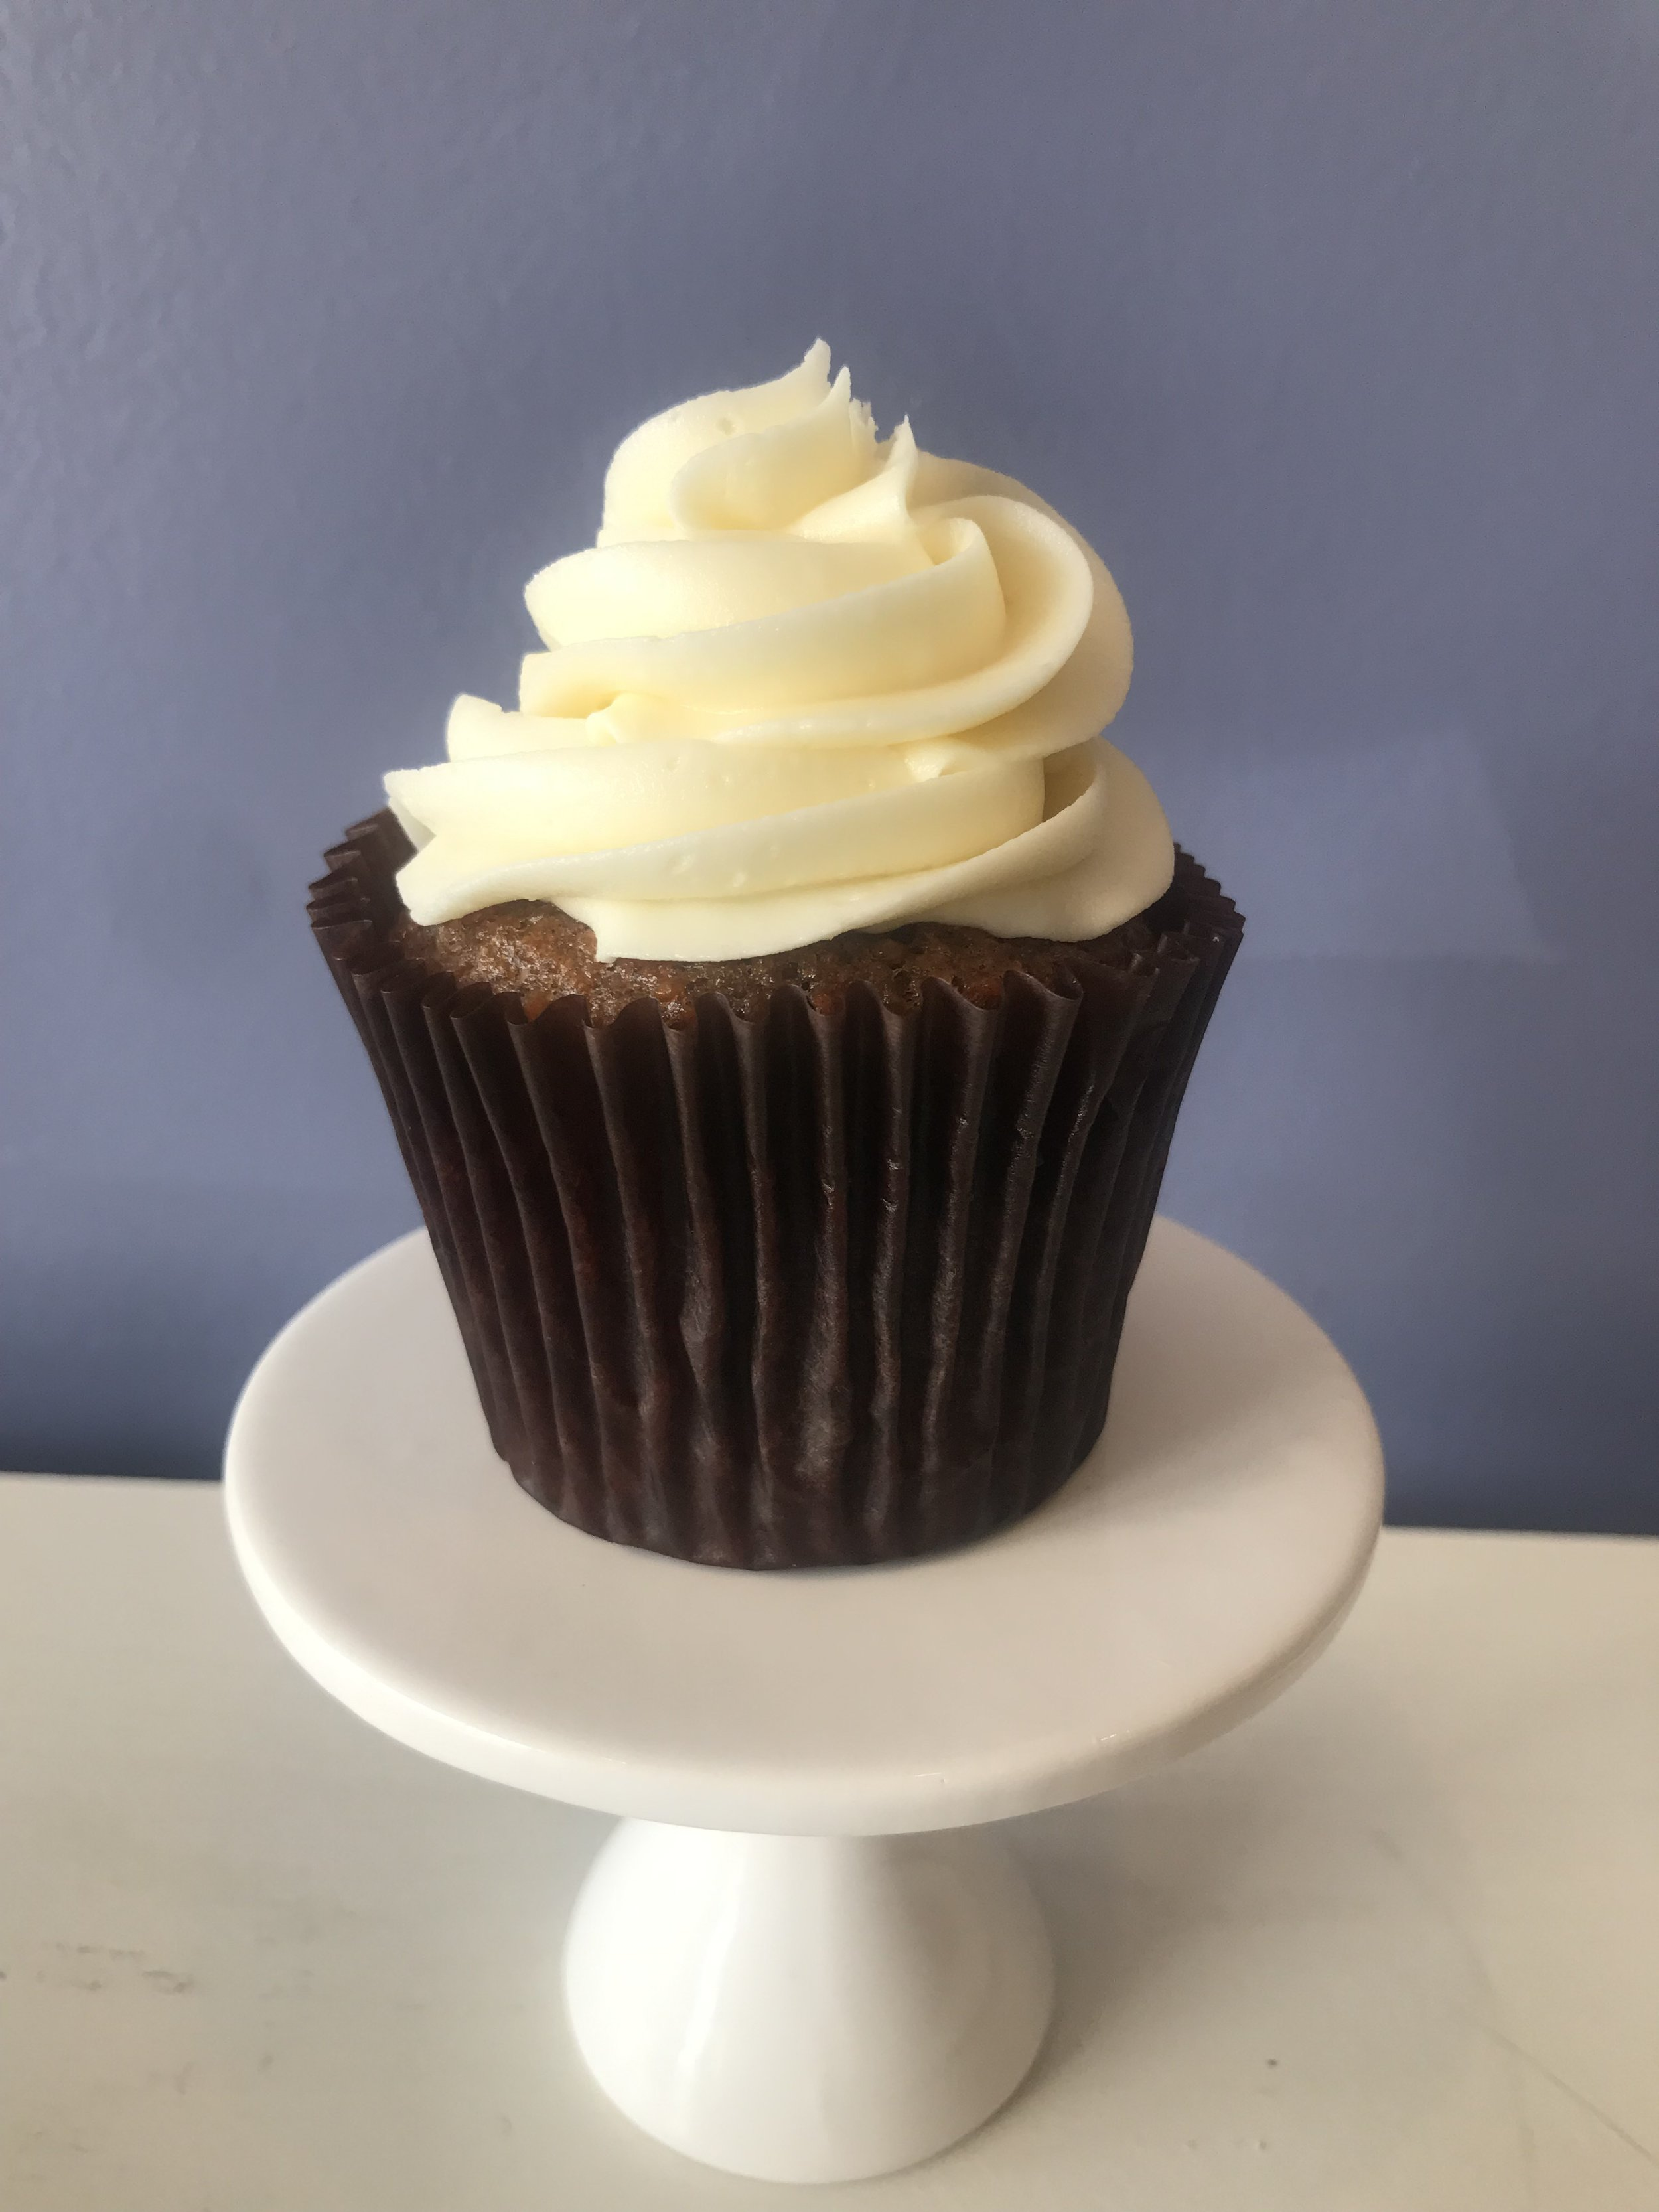 Carrot - Classic carrot cake with cream cheese frosting.